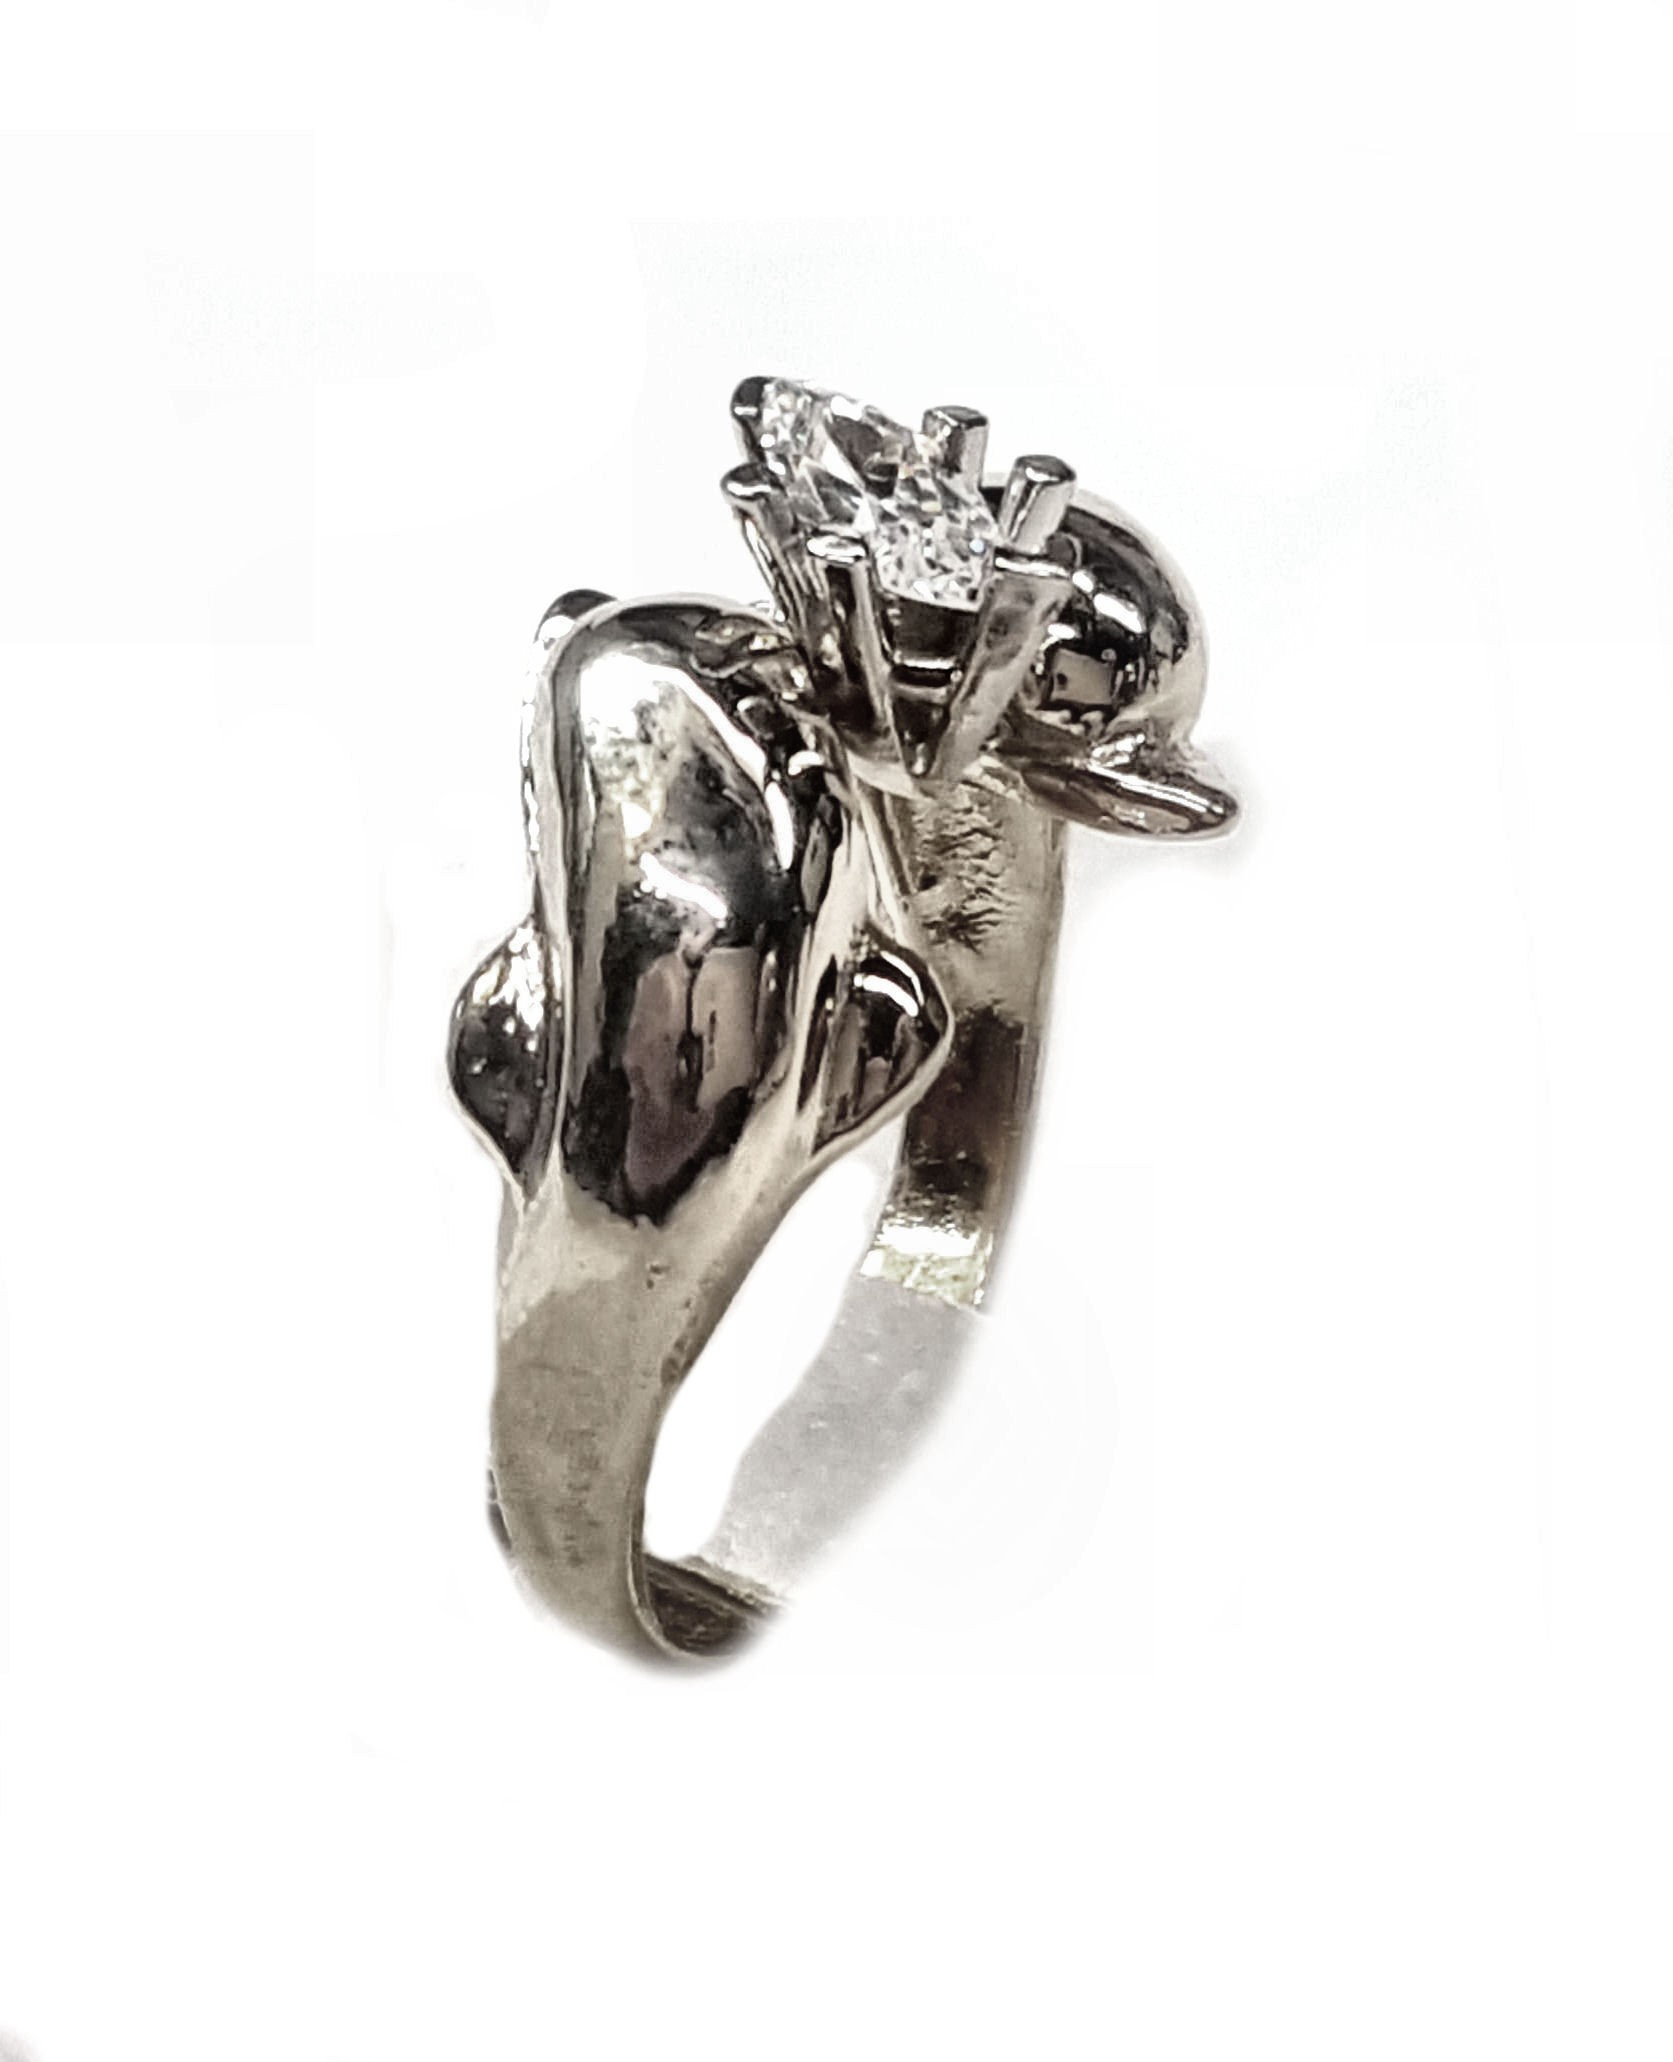 The Dolphin Bridal Jewelry Store Double Dolphin Engagement Ring w